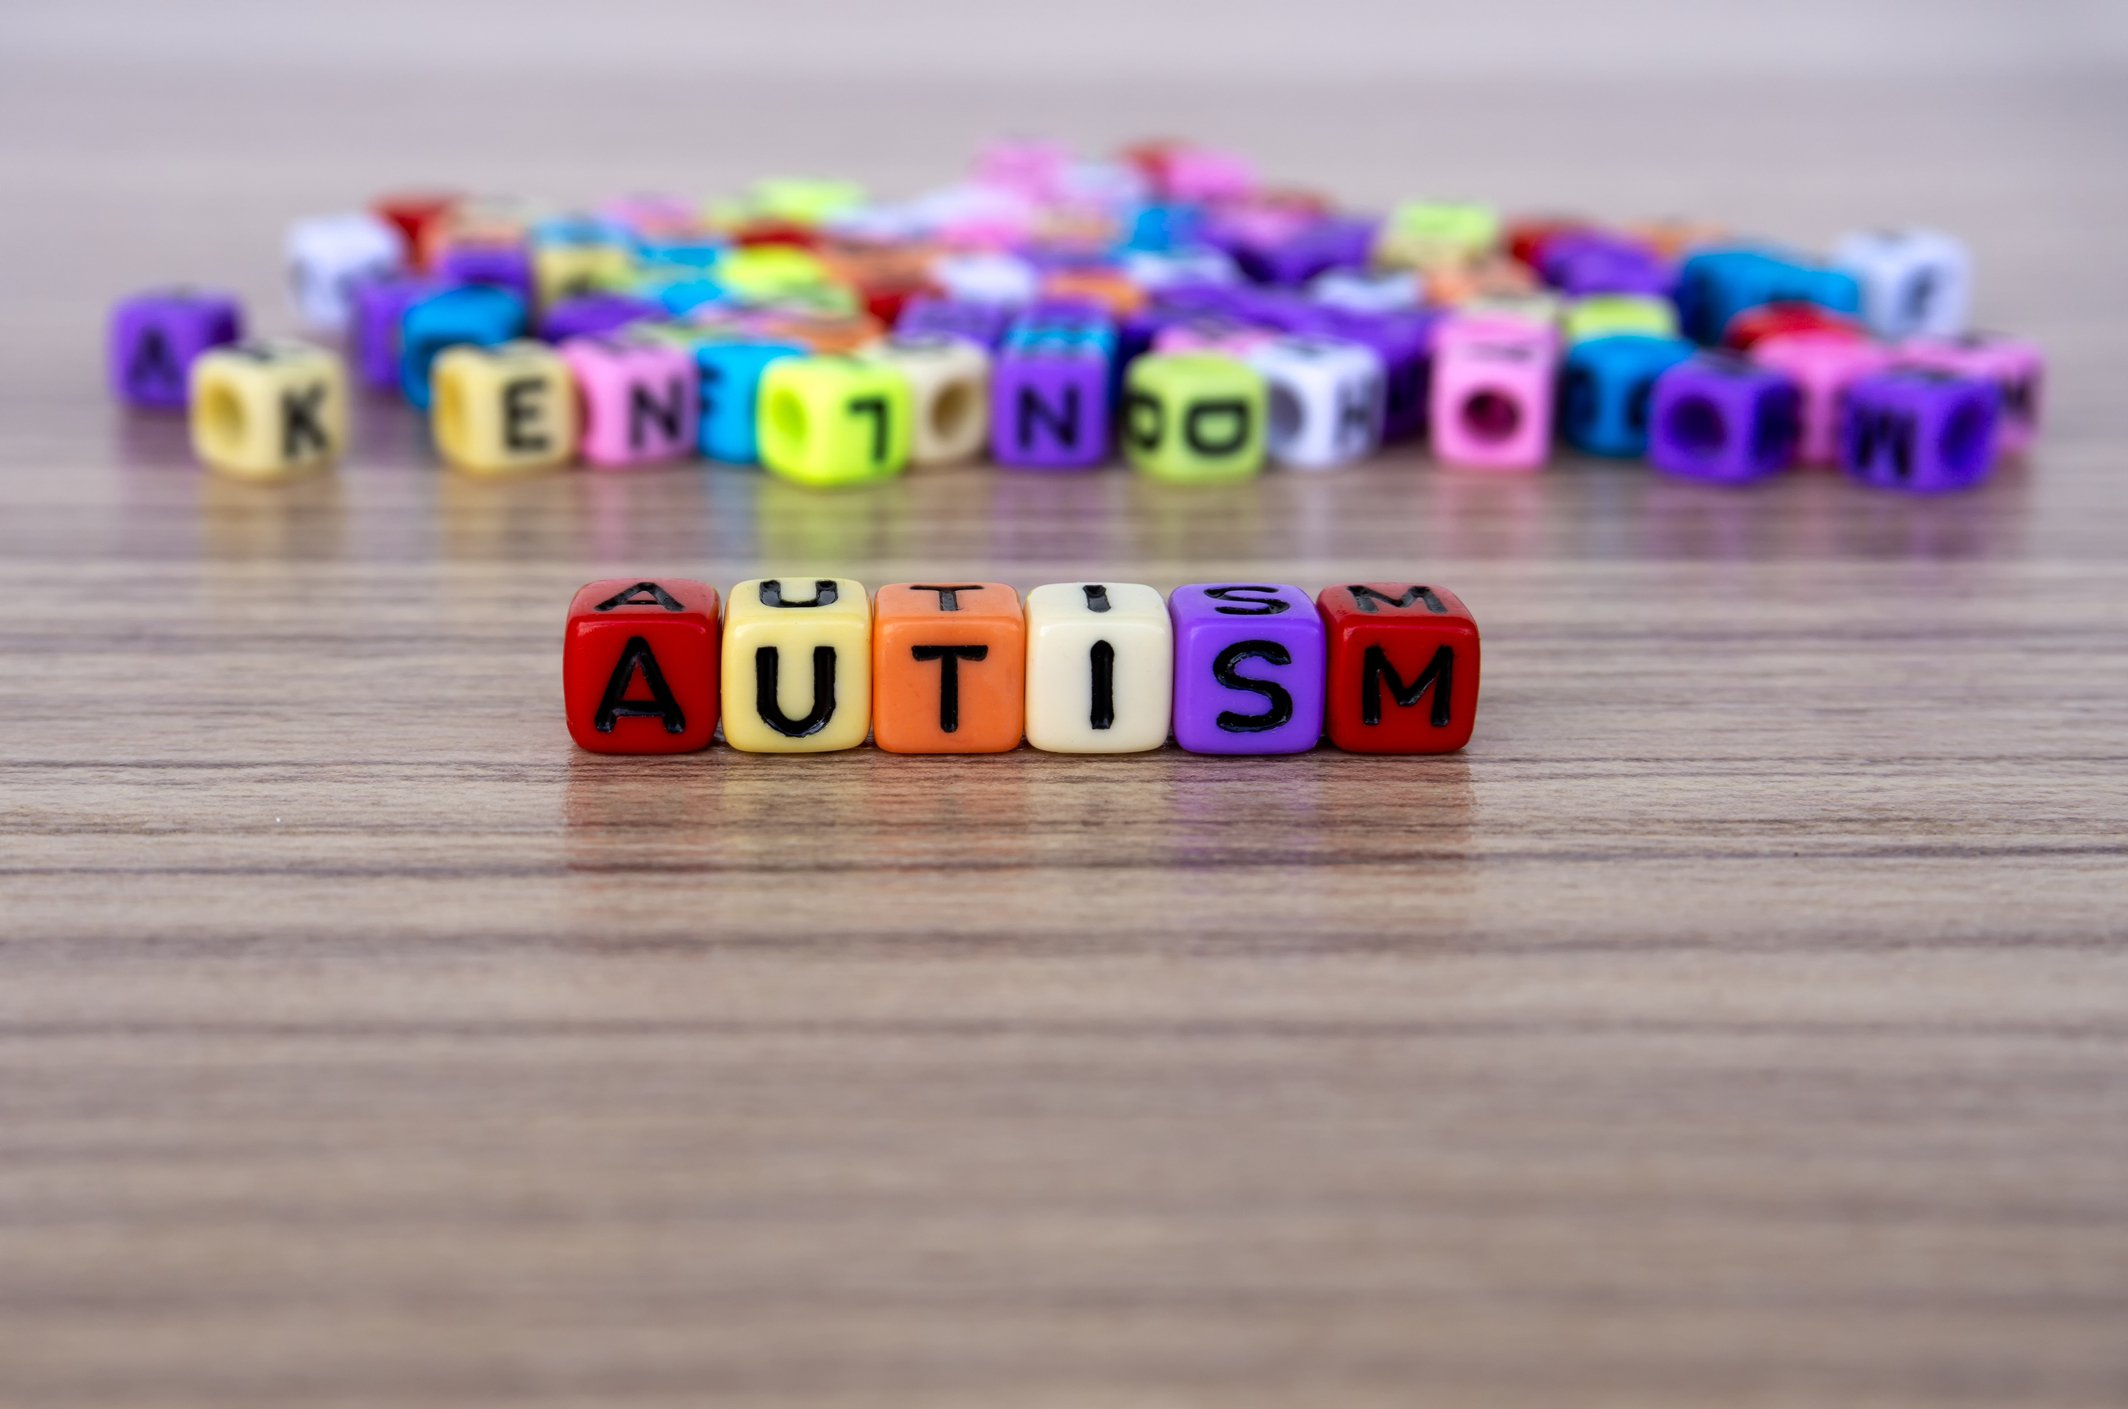 Autism cure Cease 'is a load of hocus pocus and could severely harm children'